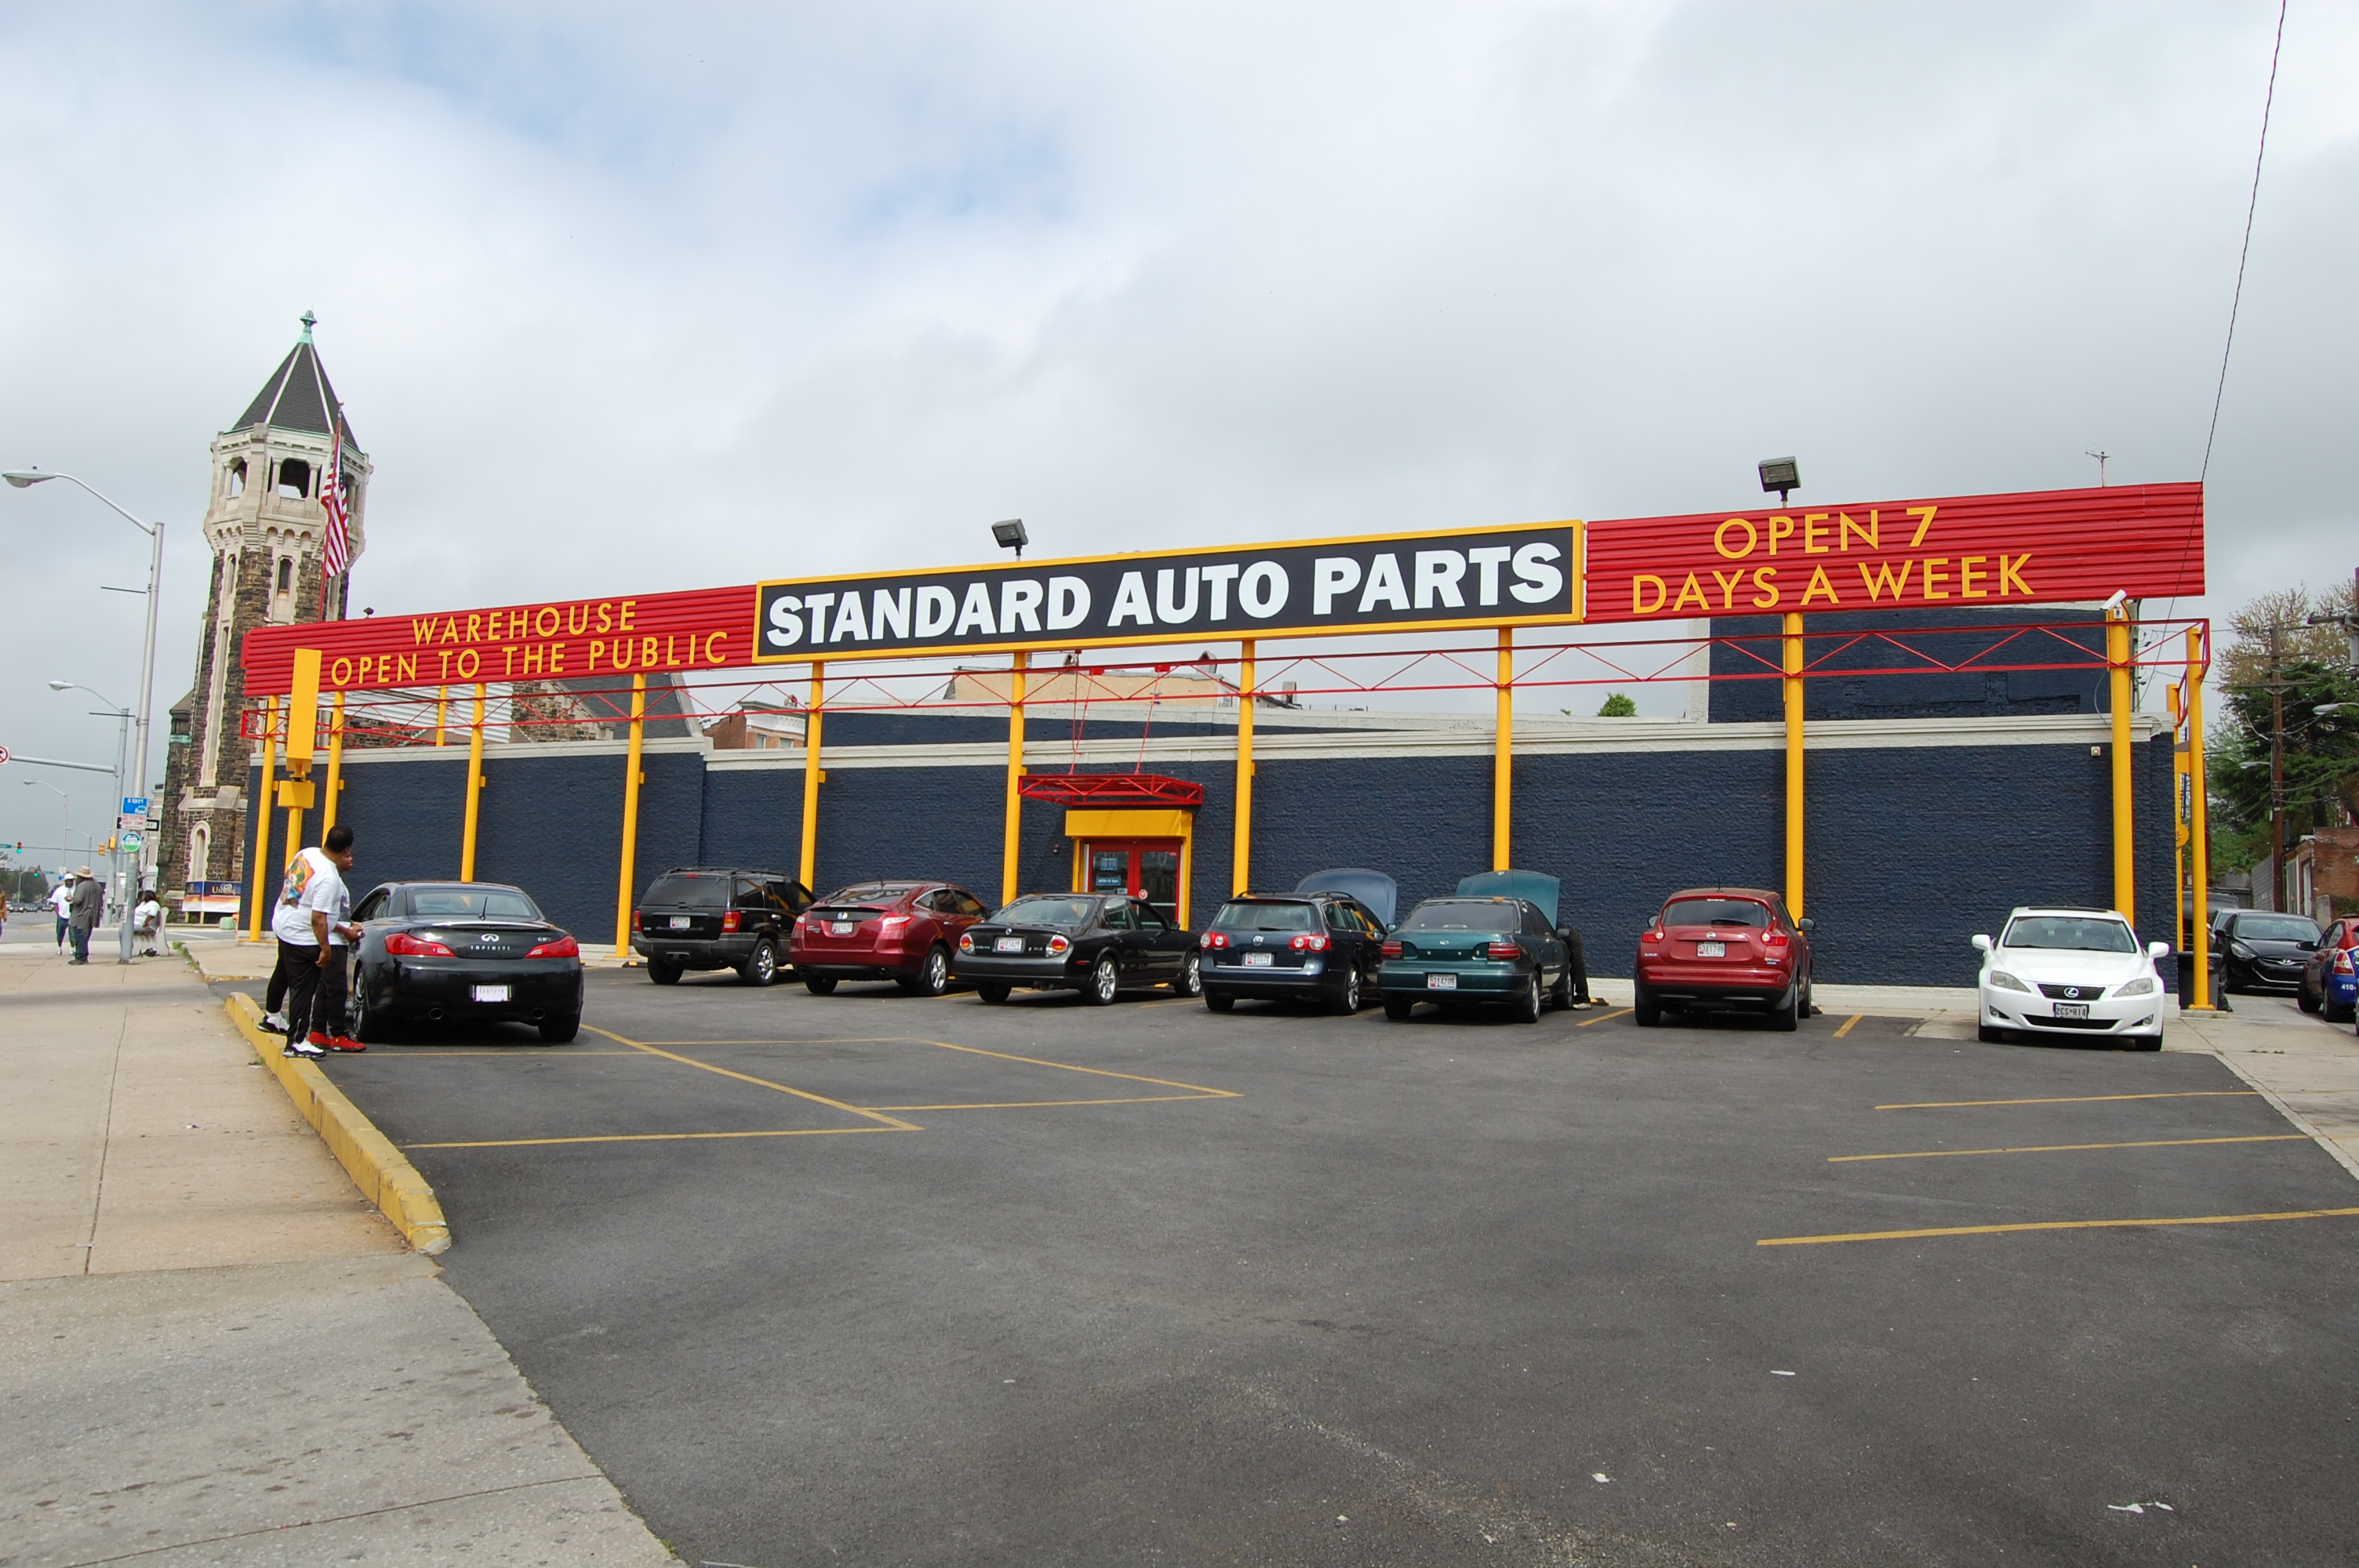 standard auto parts 1010 w north ave baltimore md 21217 yp com standard auto parts 1010 w north ave